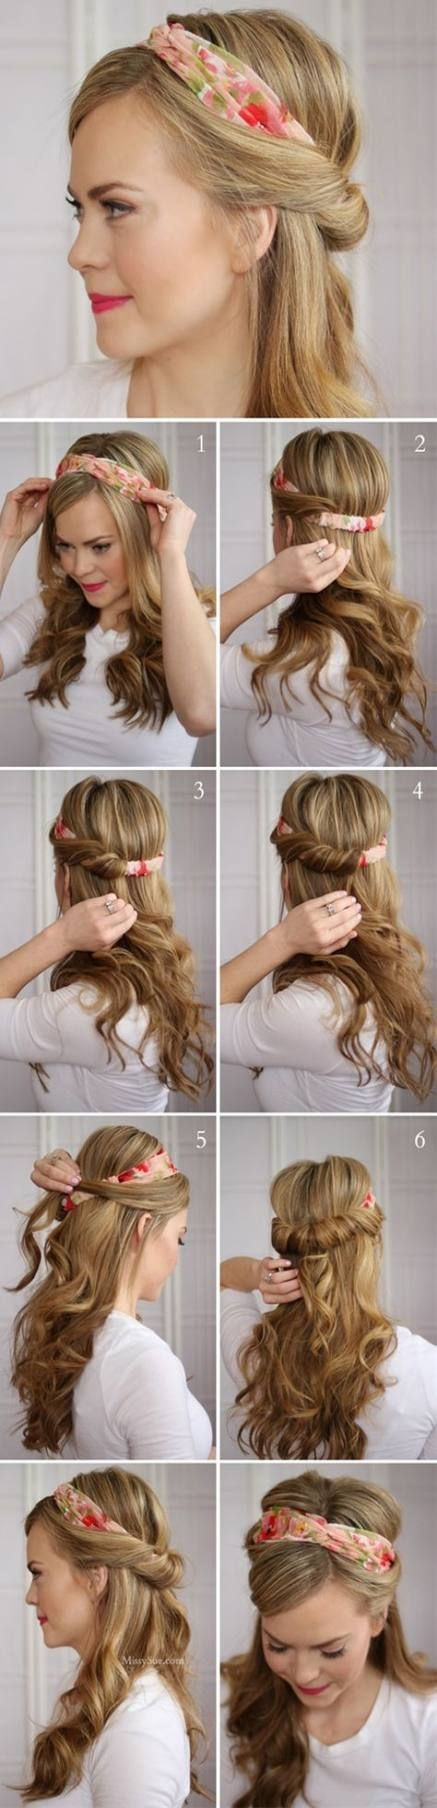 How to wear headbands hairstyles messy buns 30+ Super ideas  #buns #Hairstyles #Headbands #Id...